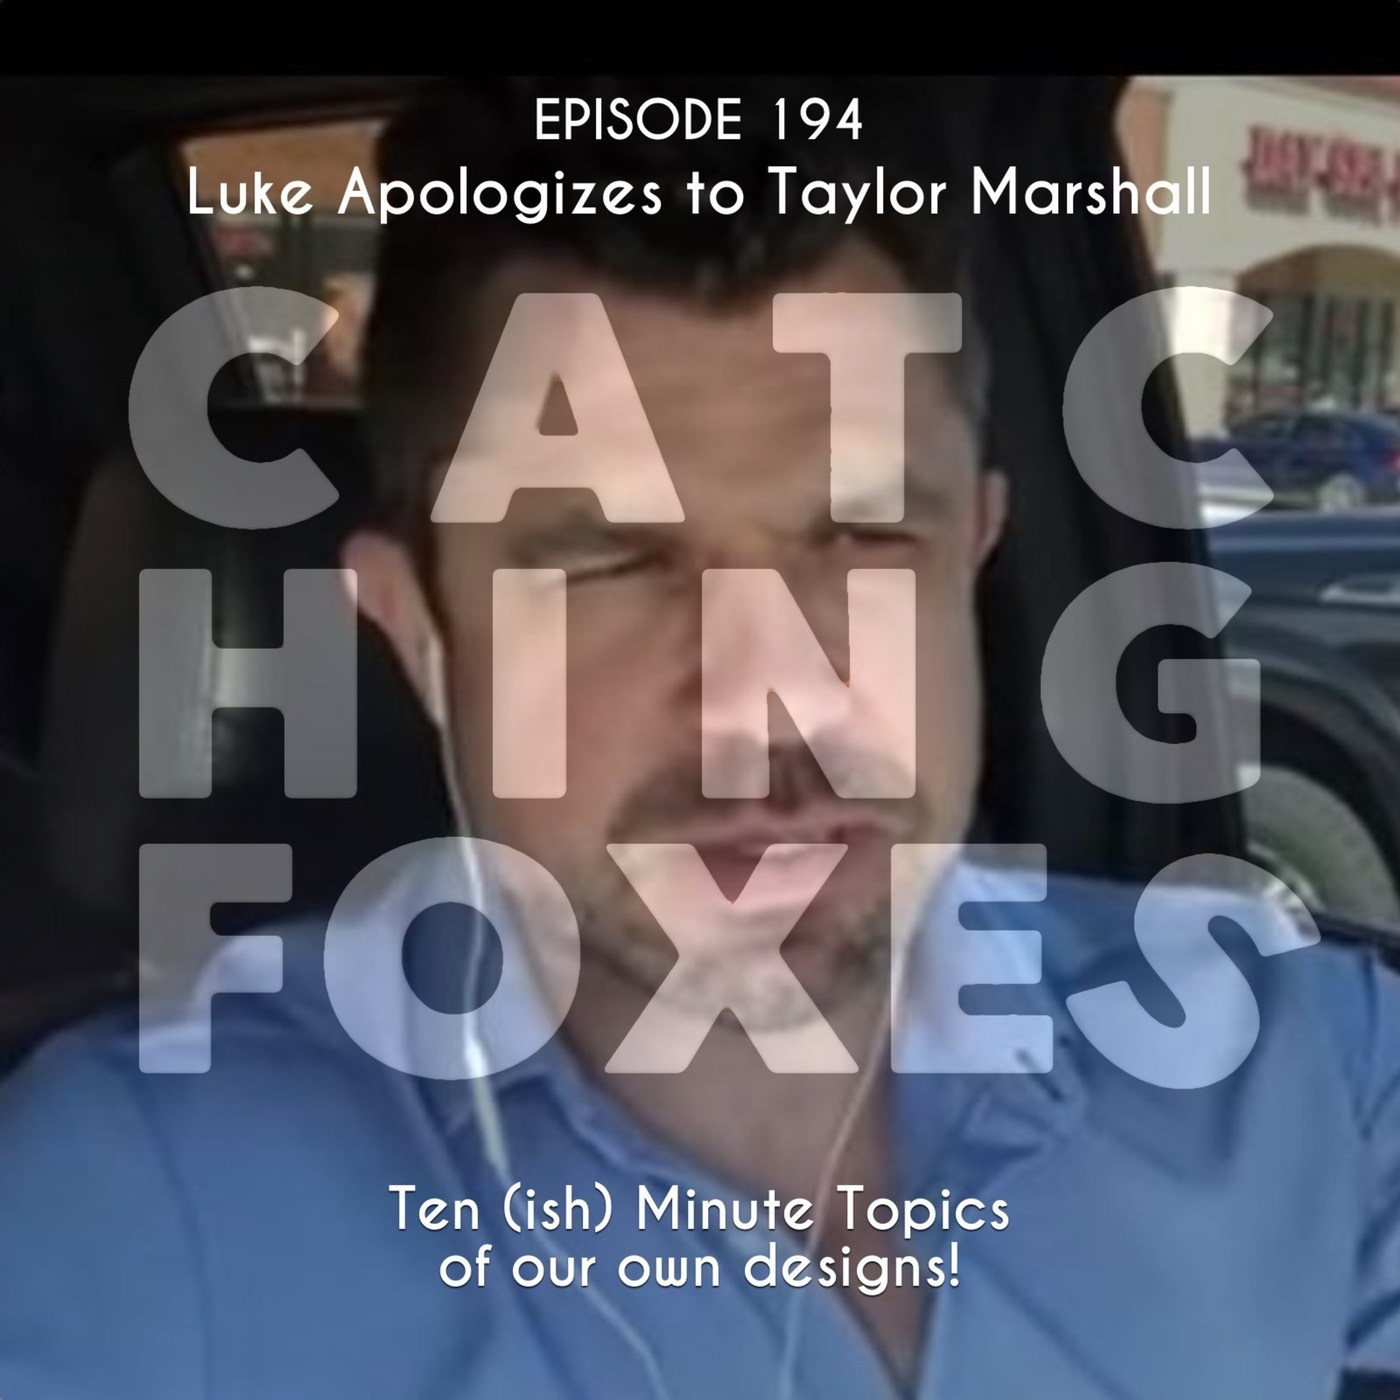 Catching Foxes: Luke Apologizes to Taylor Marshall